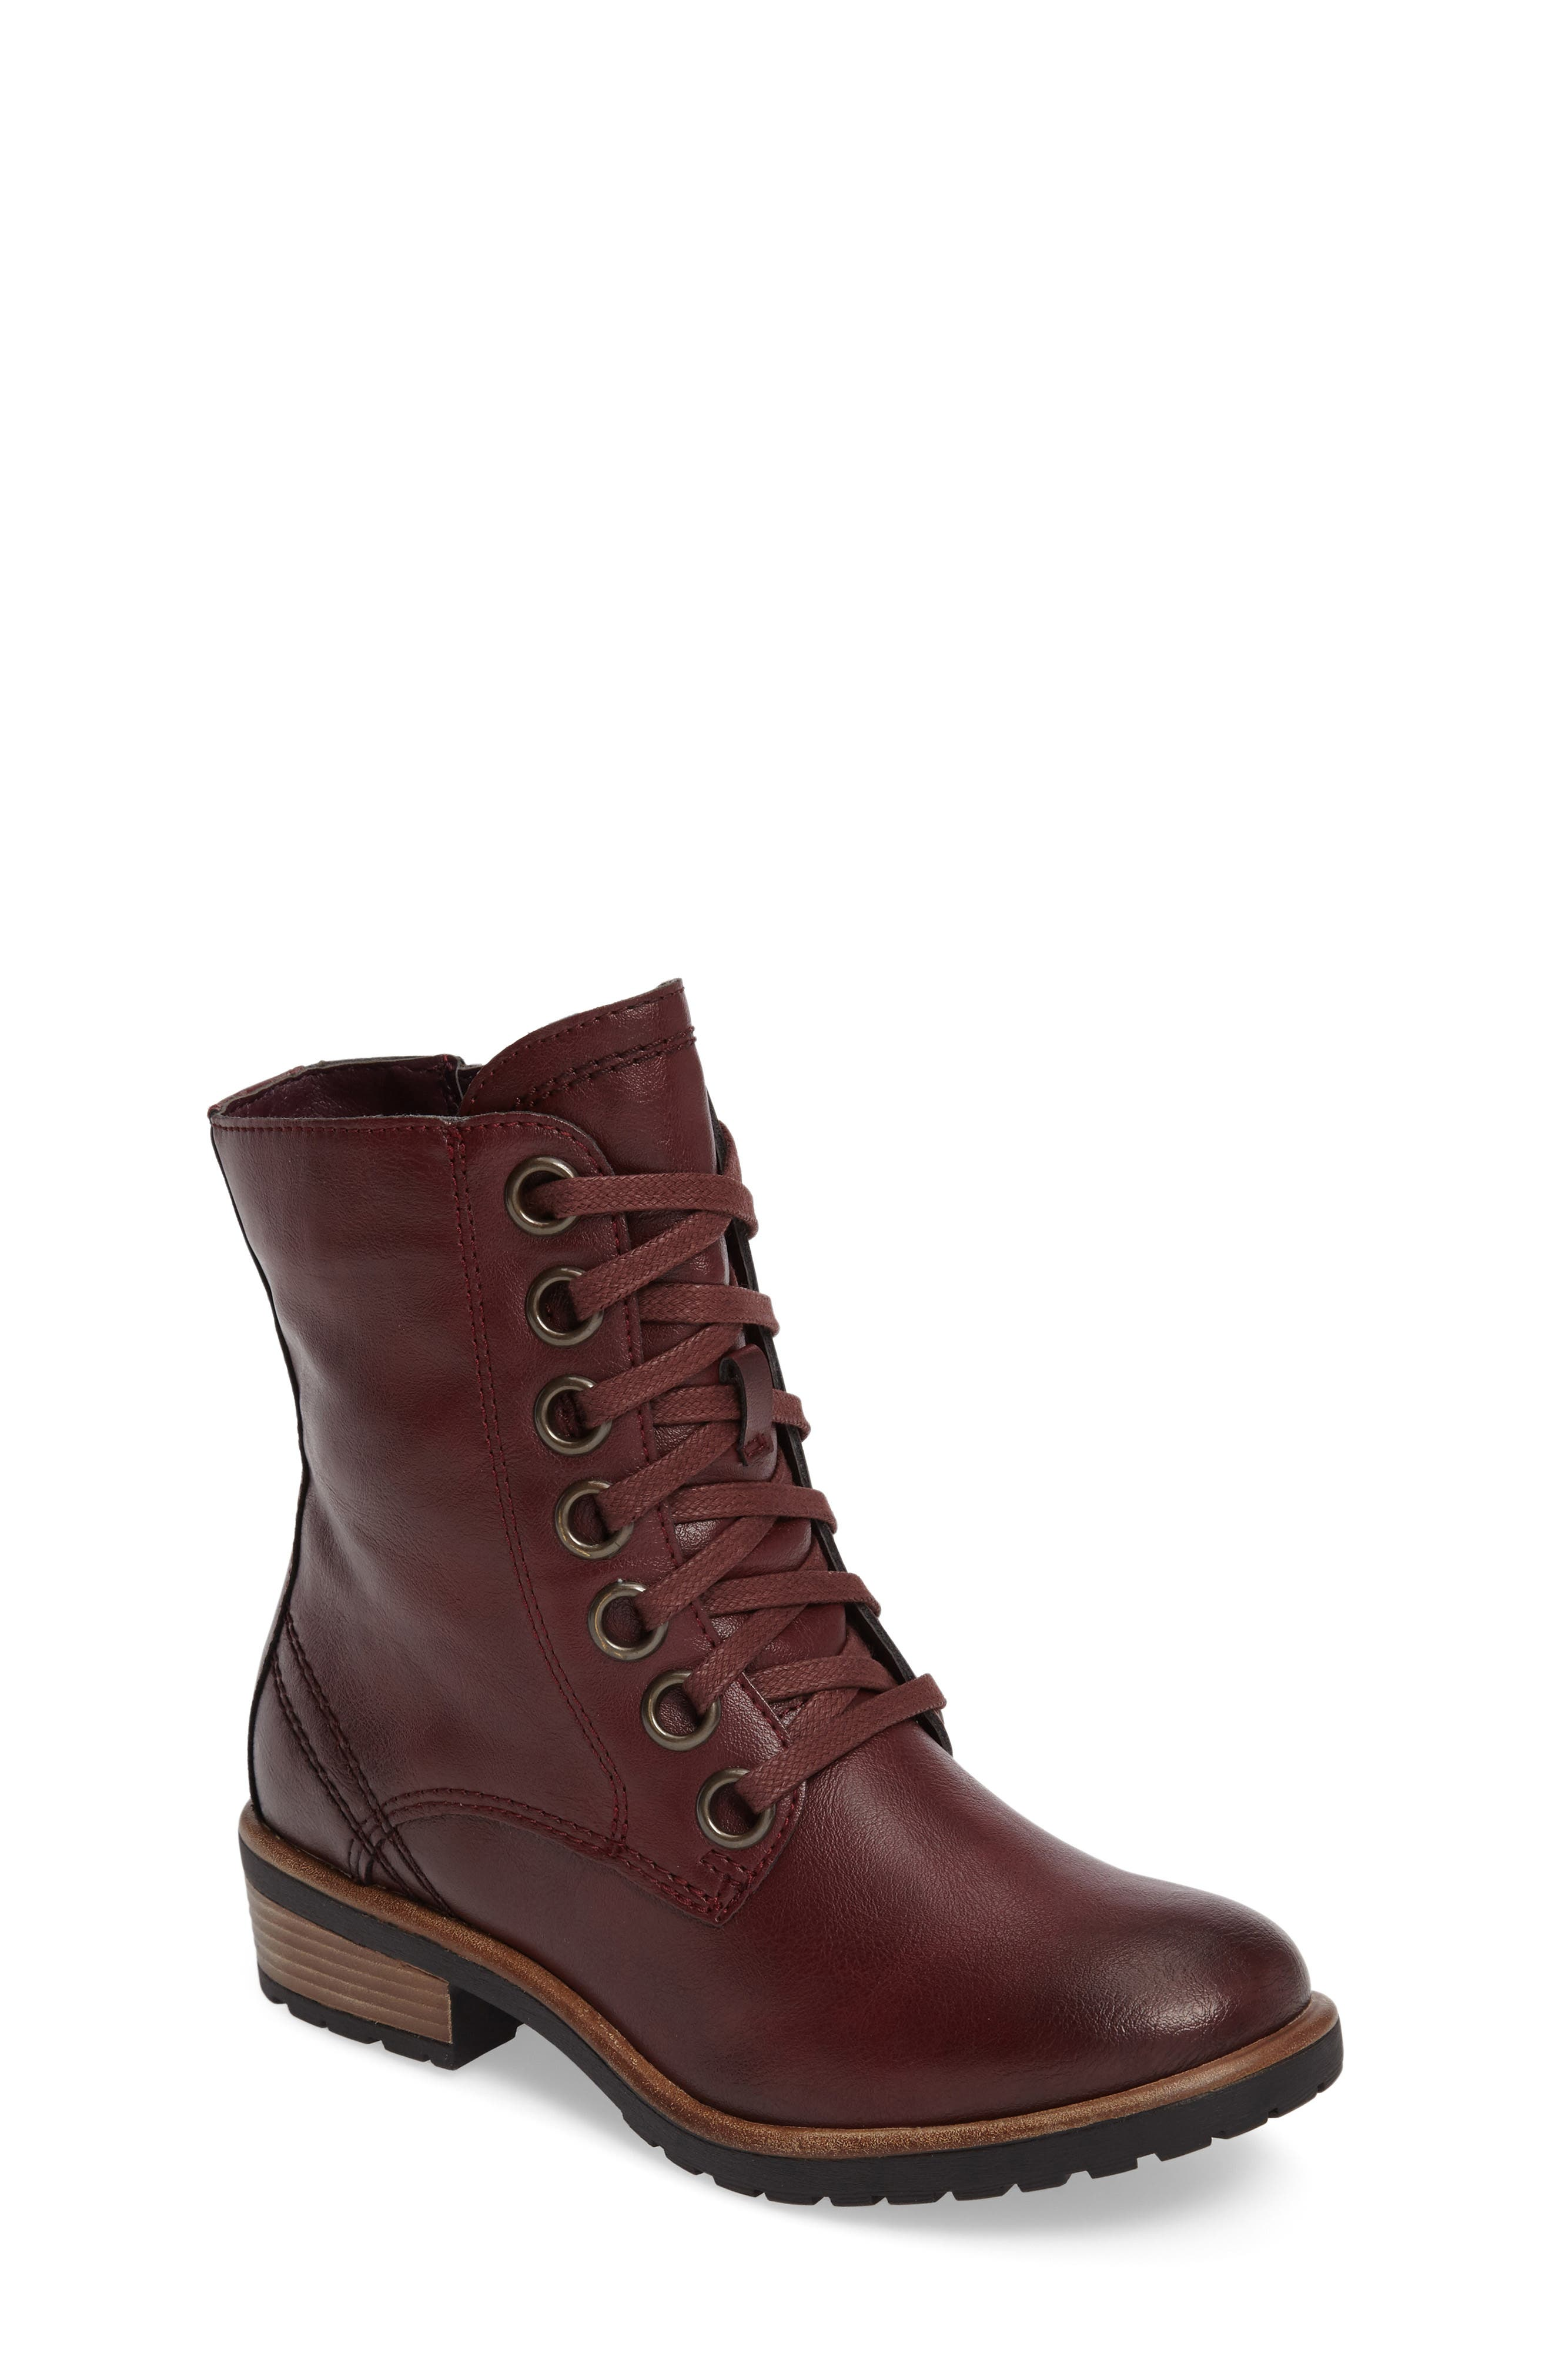 Alternate Image 1 Selected - Tucker + Tate 'Amsterdam' Lace Up Boot (Toddler, Little Kid & Big Kid)